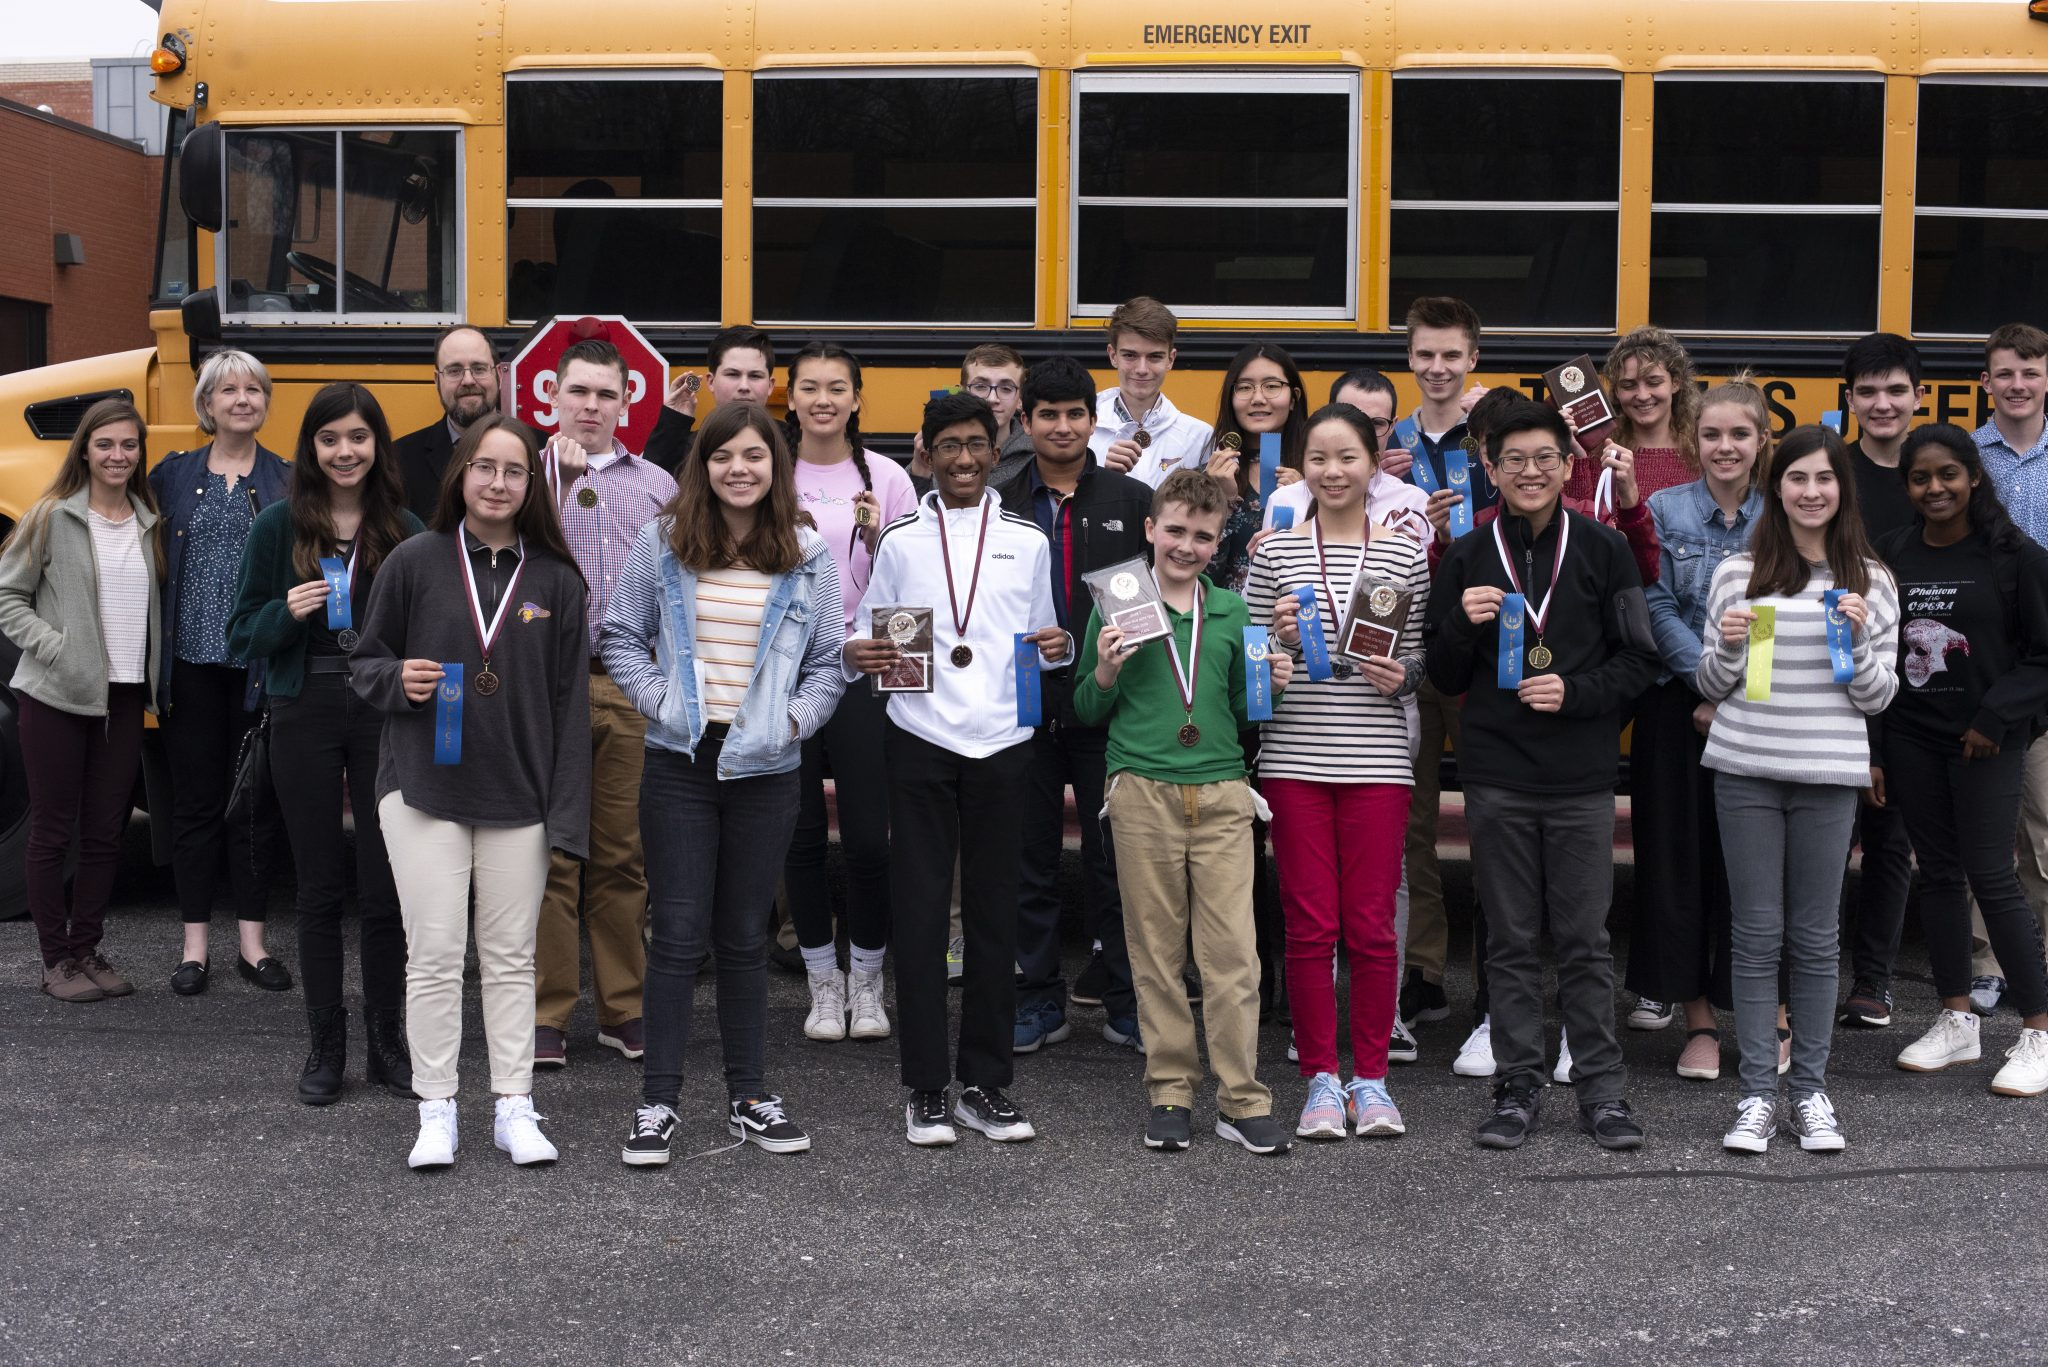 TJ STUDENTS OUTPERFORM AT OZARK 7 CONFERENCE MATH & SCIENCE CONTEST